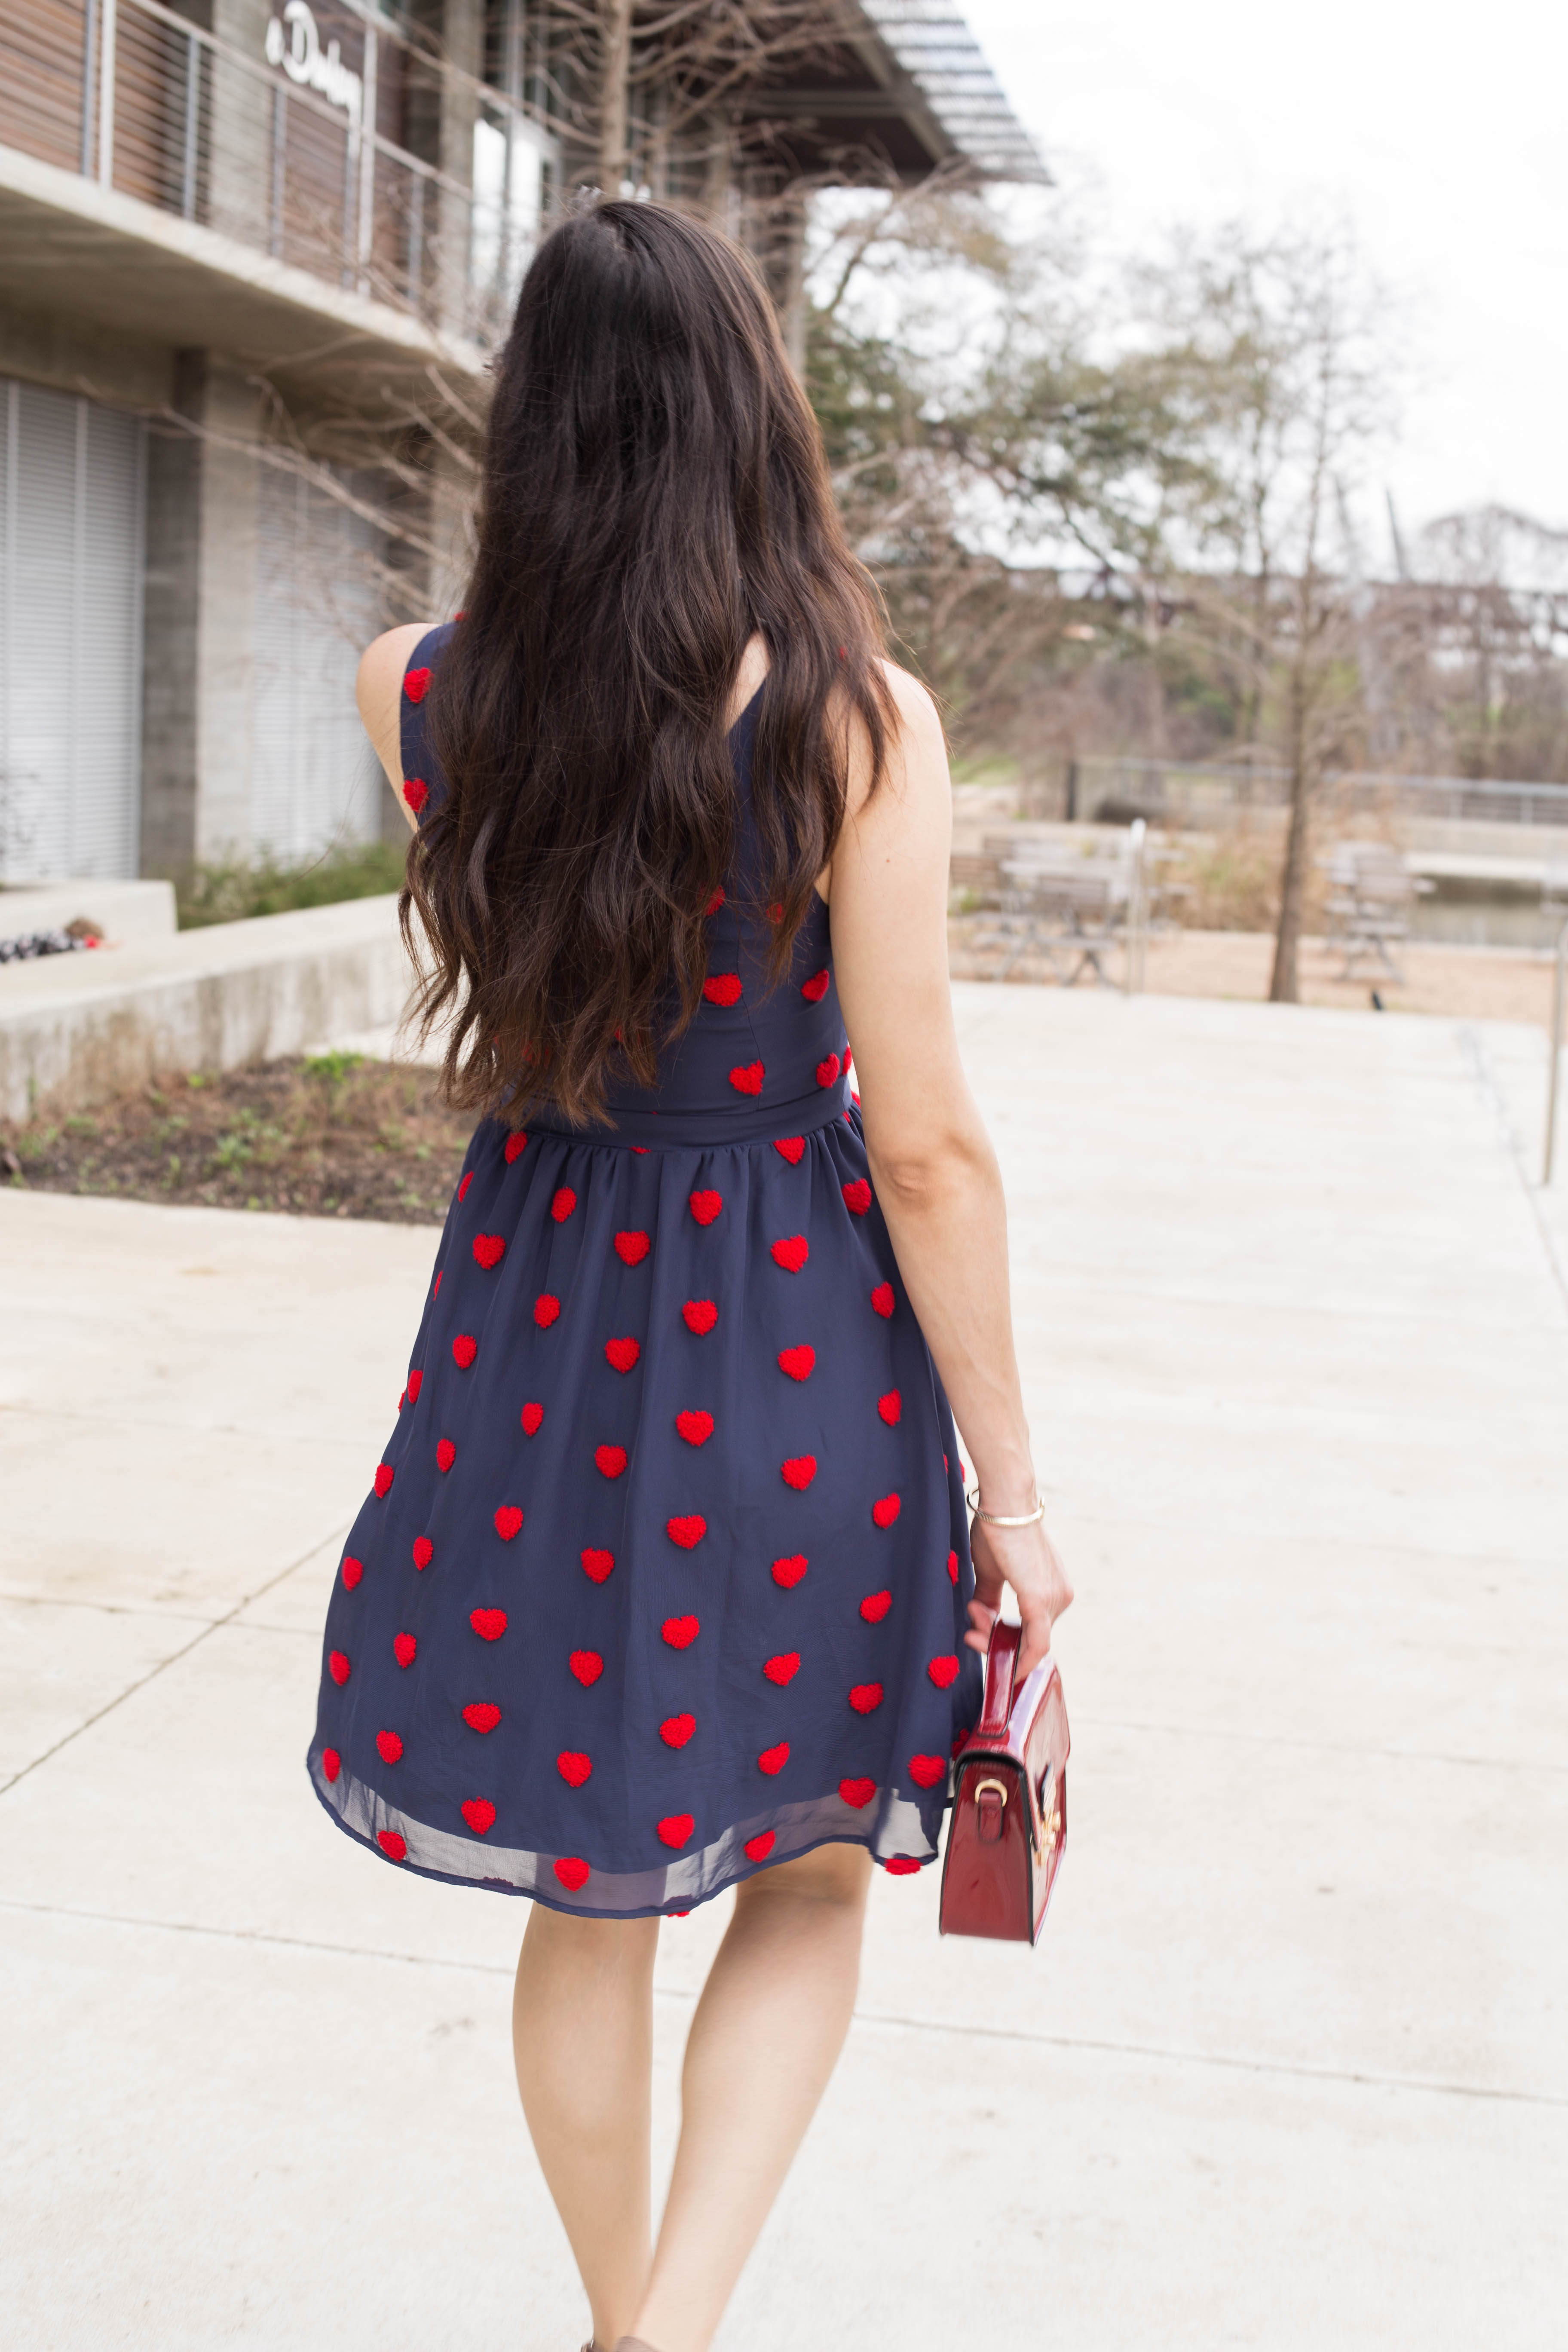 Cute A line Skirt perfect for #datenight : The Fashionable Maven